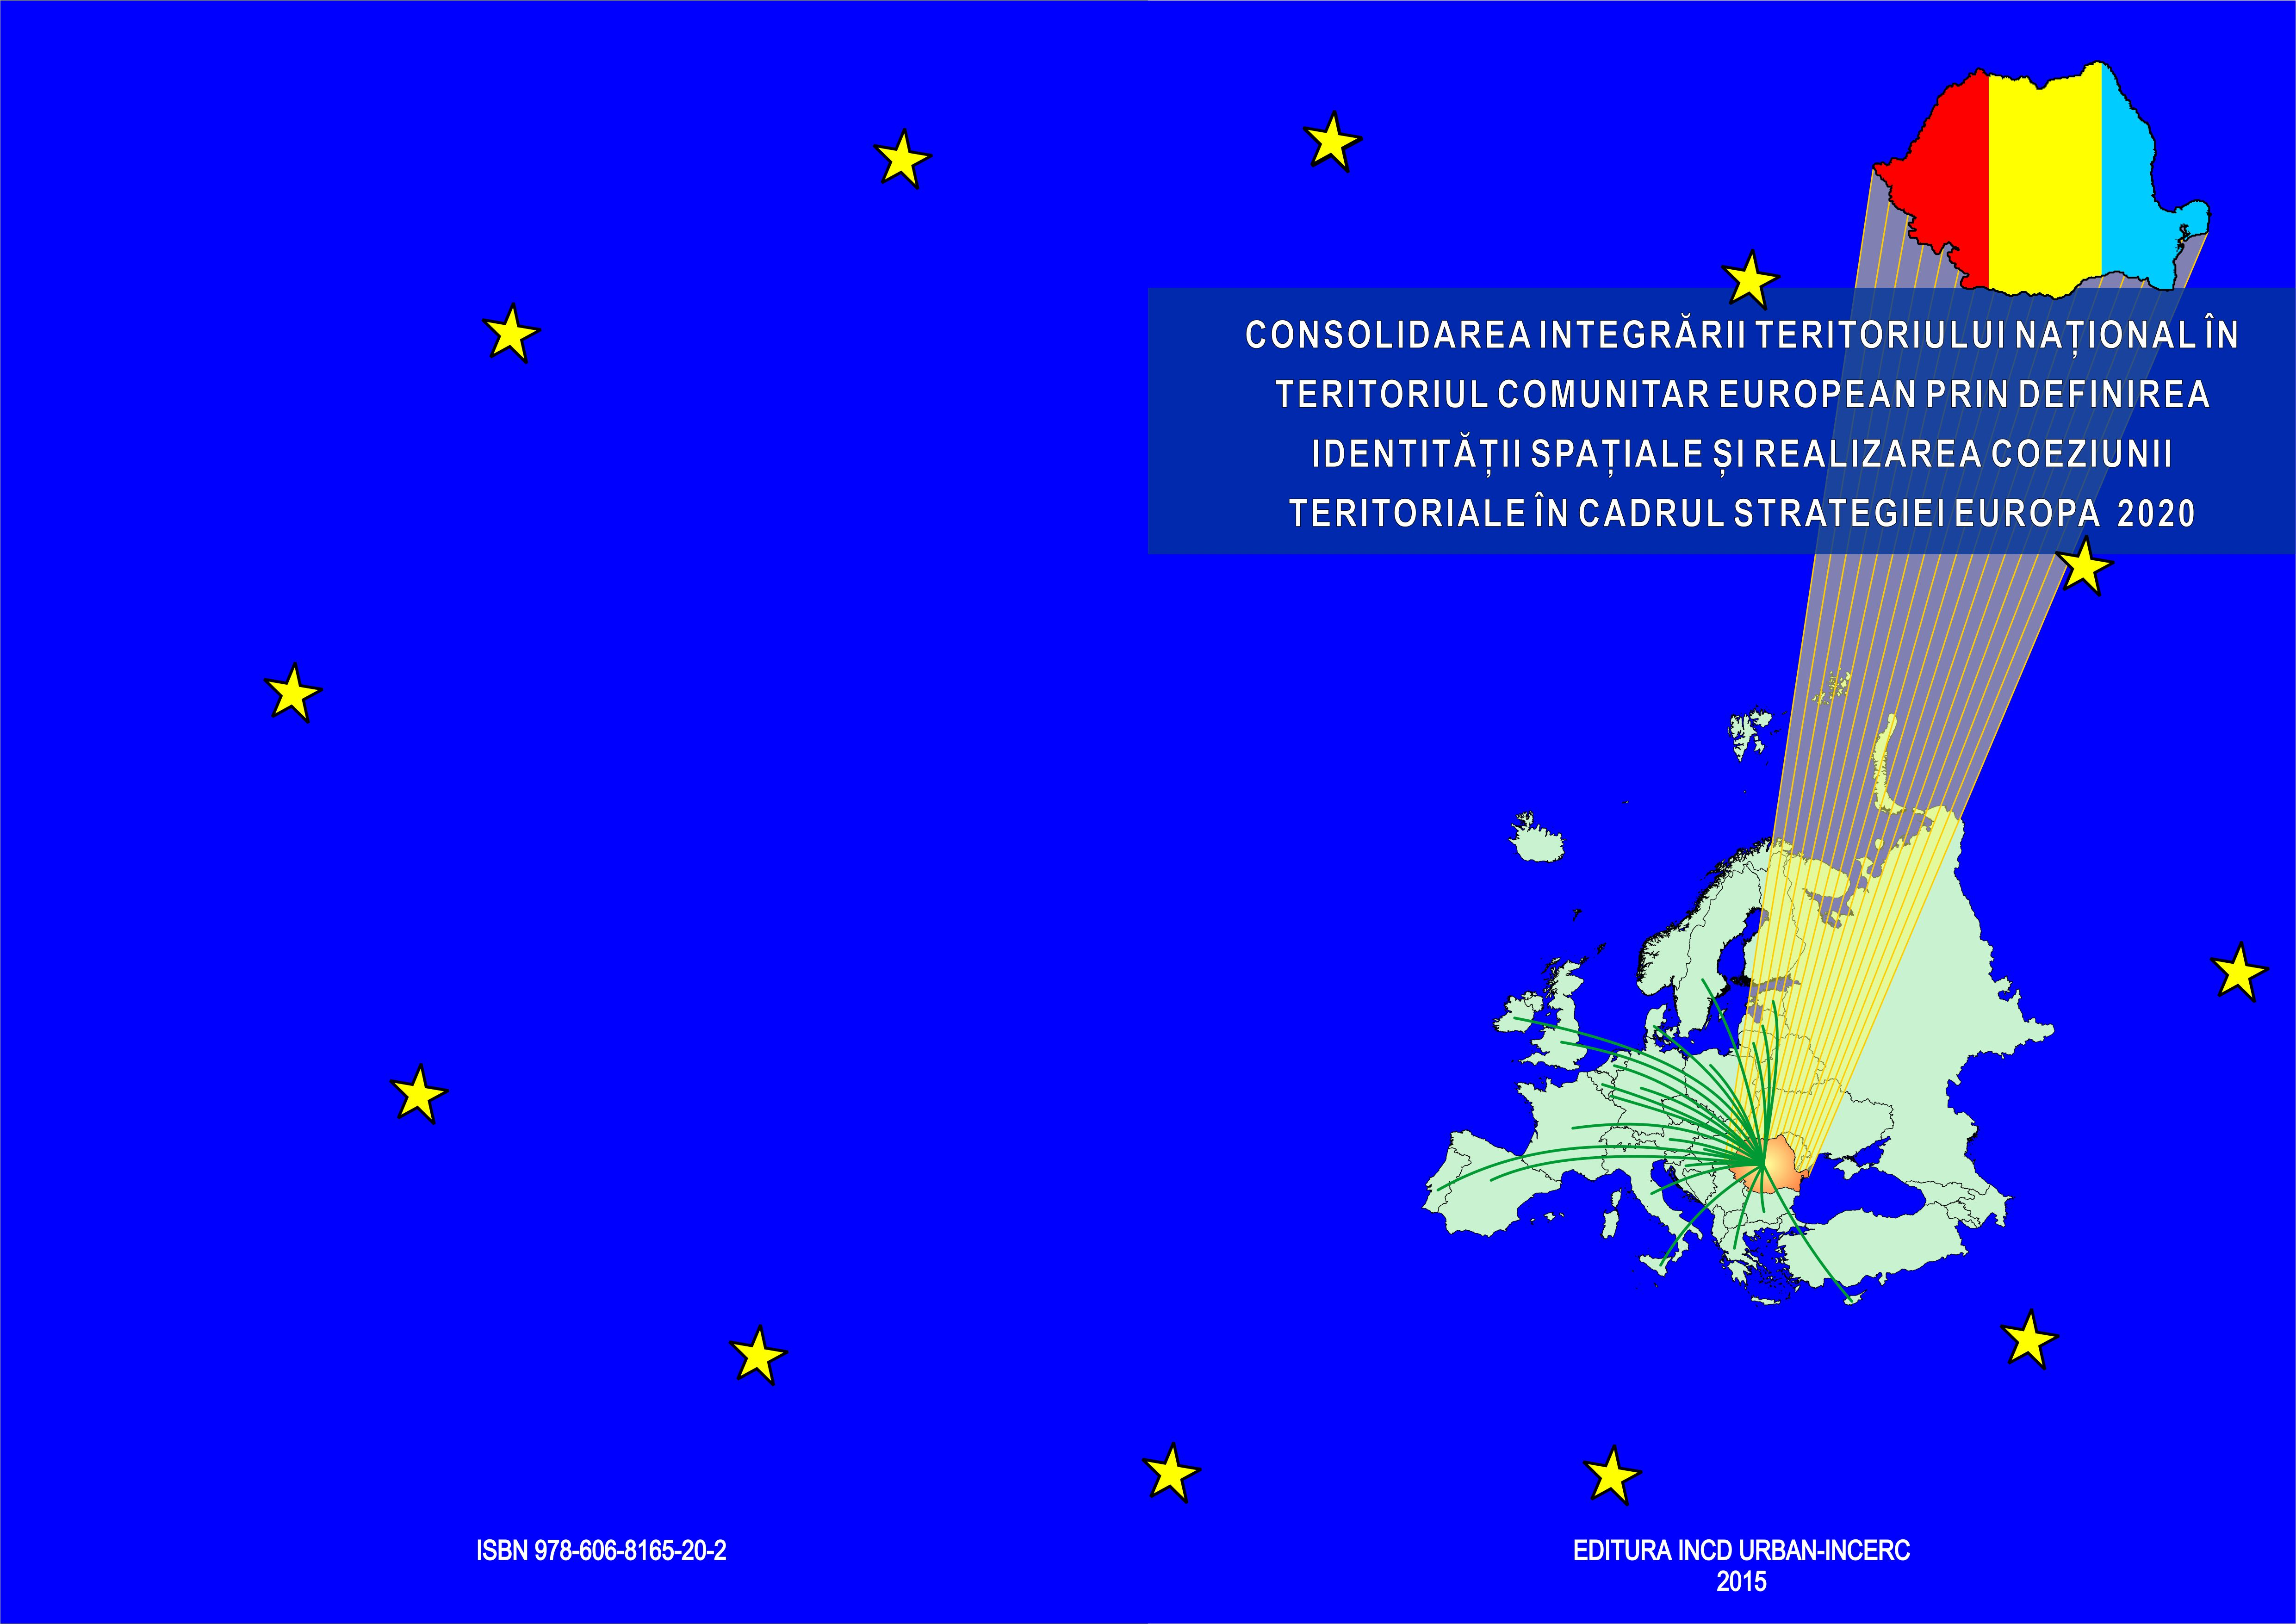 Correlation analyses based on territorial indices according to the Europa 2020 Strategy targets: social and labor force area Cover Image